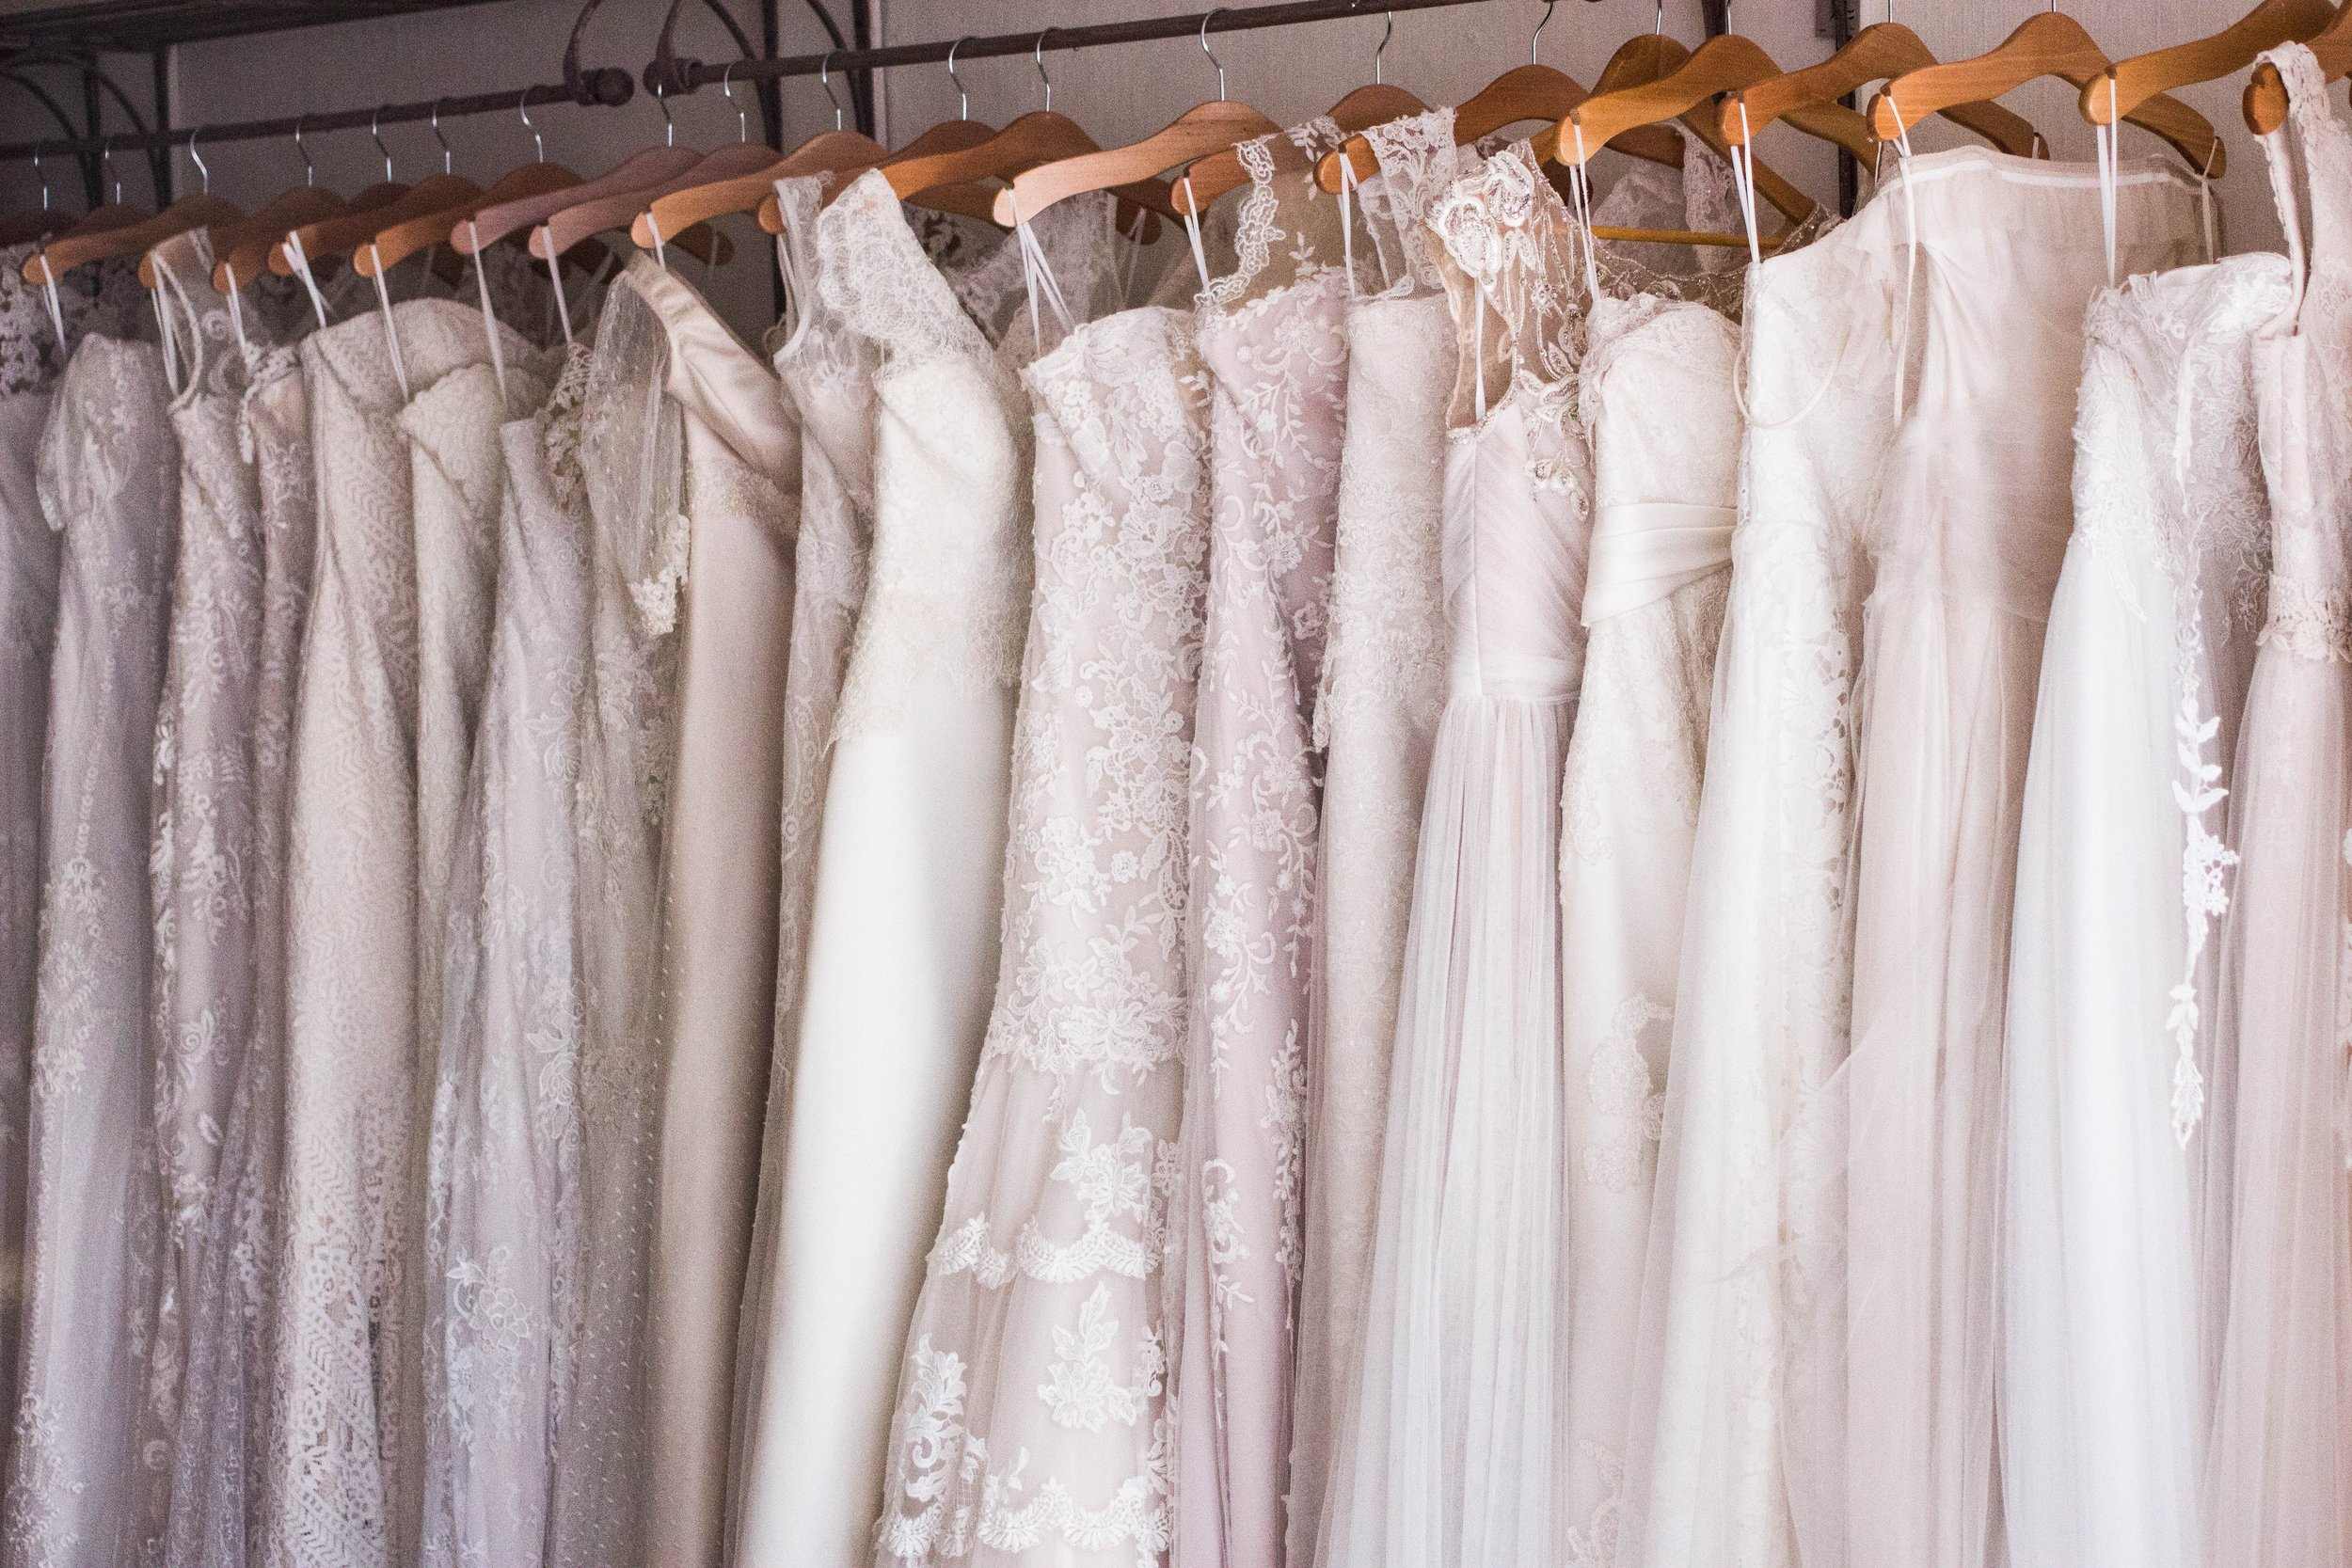 Wedding dress shops in Maine | Photo by  Charisse Kenion  on  Unsplash